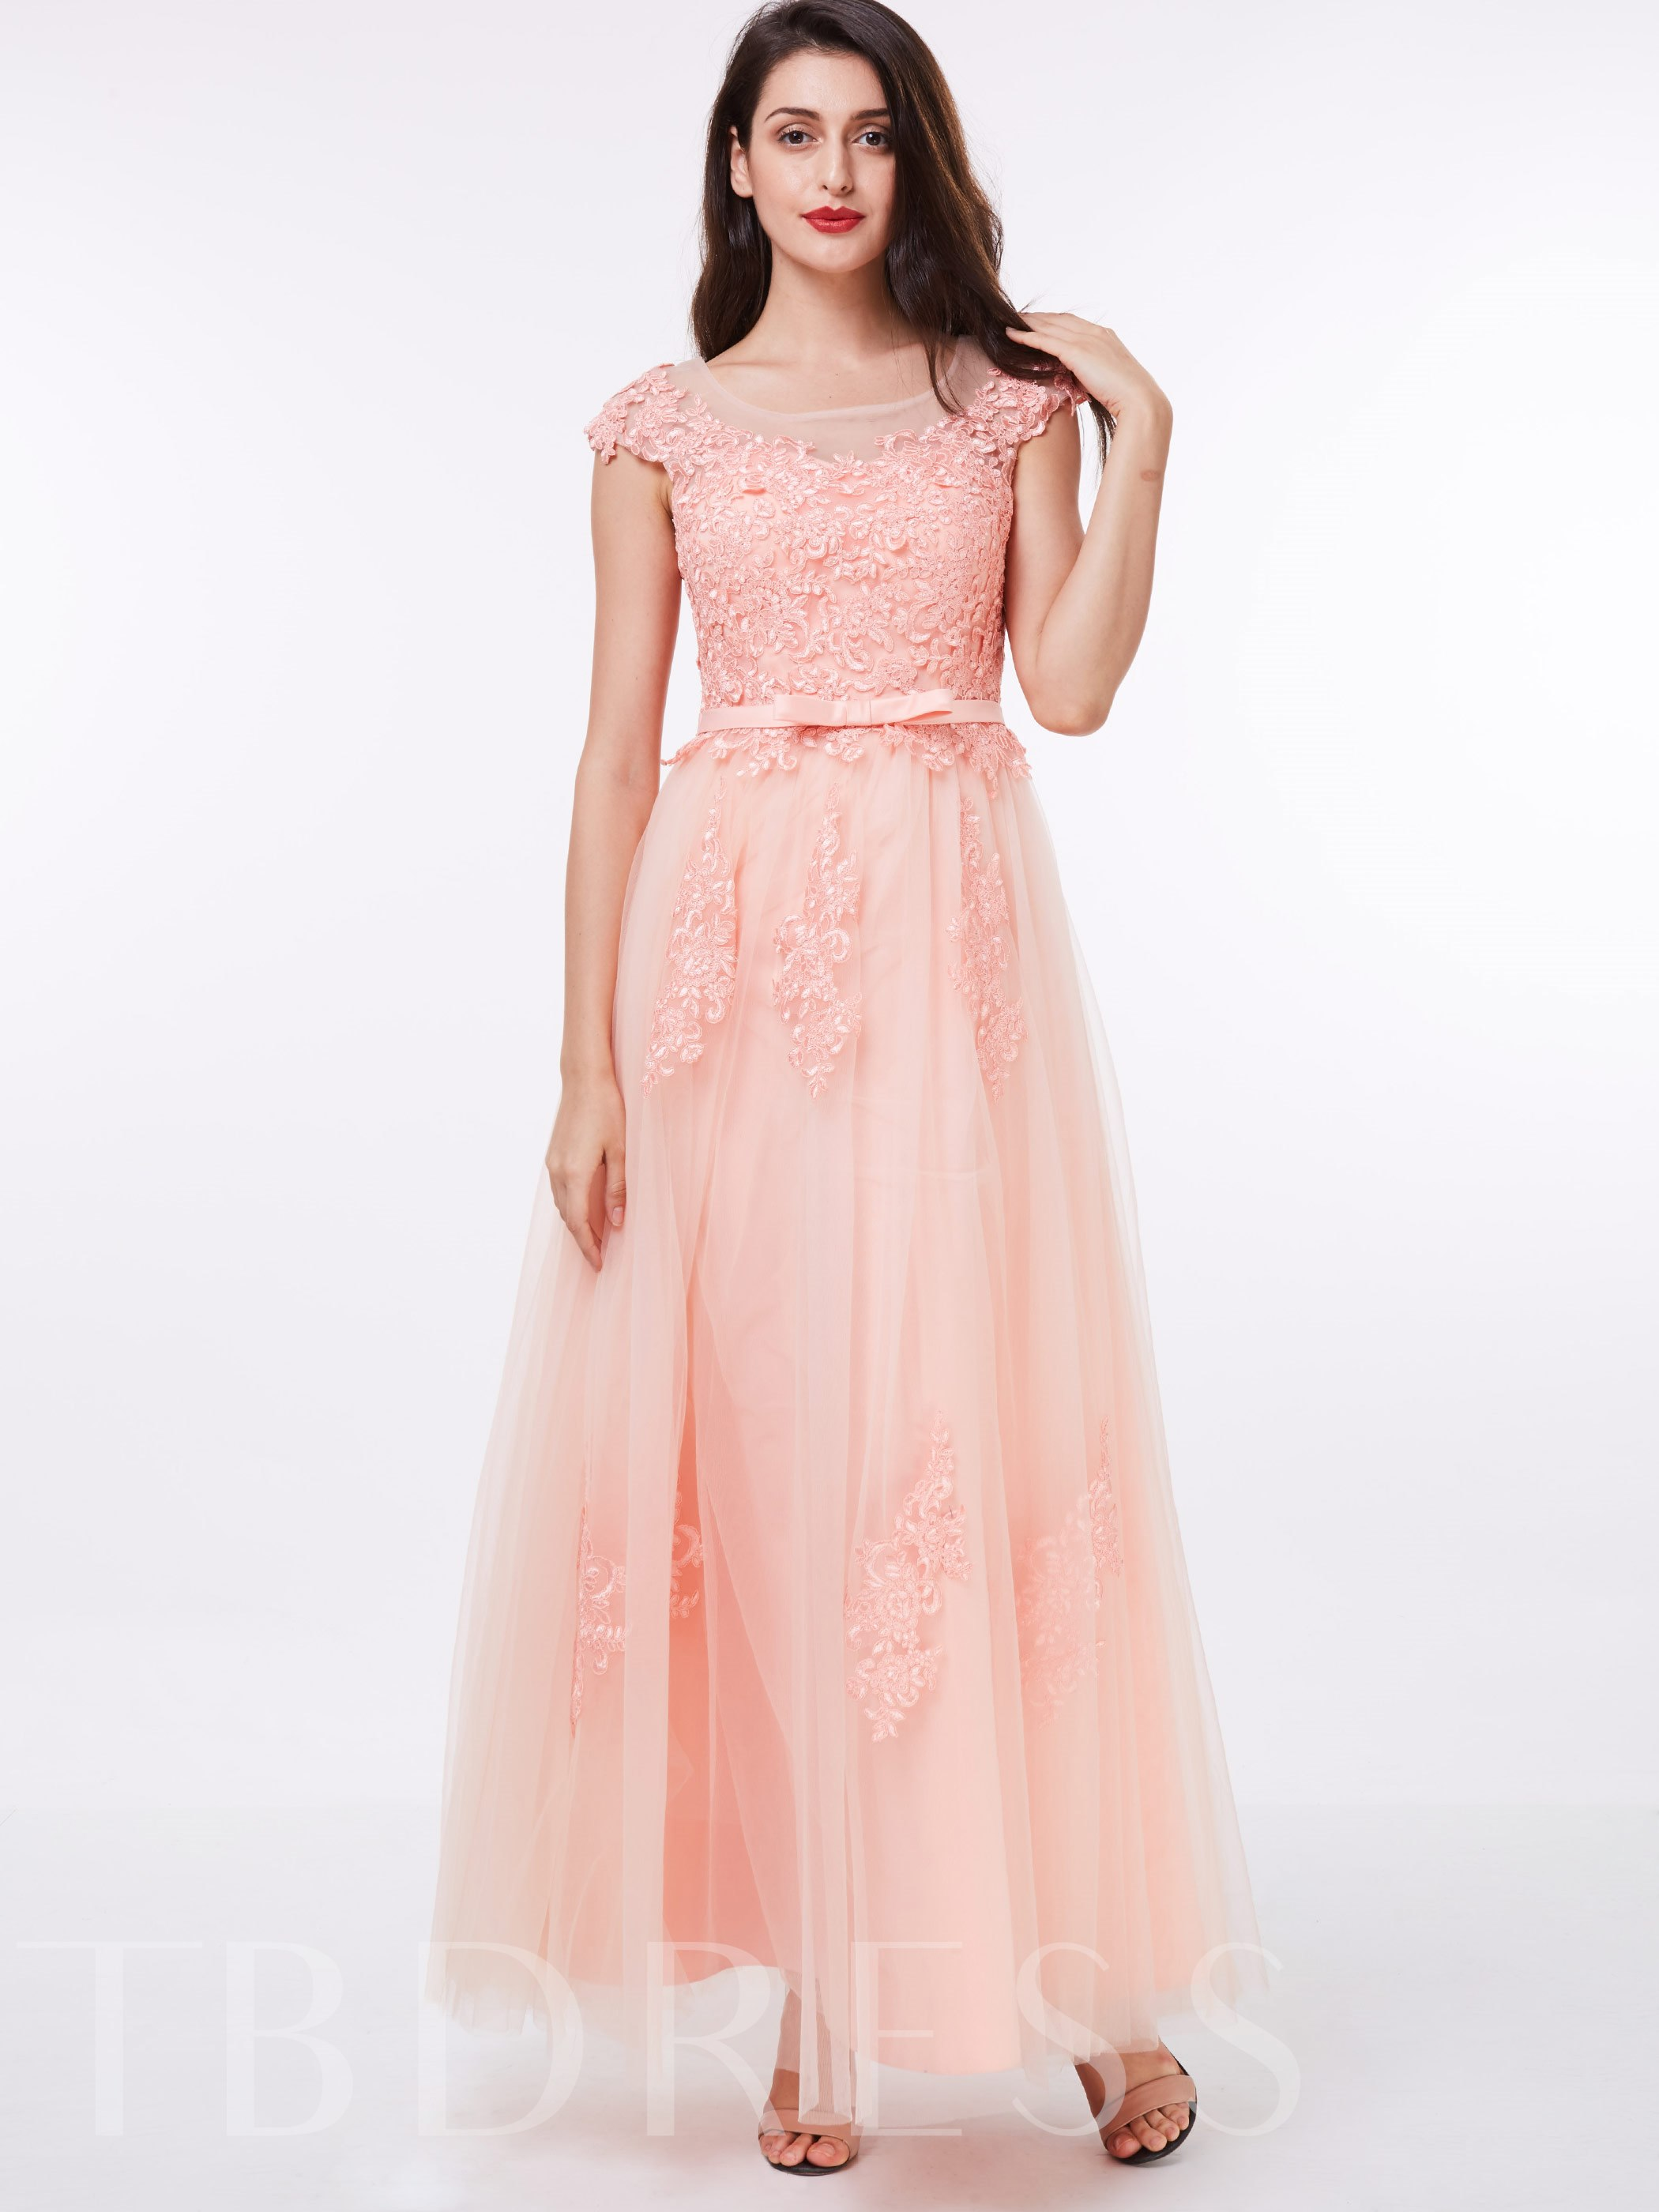 Image of A-Line Jewel Cap Sleeves Appliques Sashes Floor-Length Evening Dress